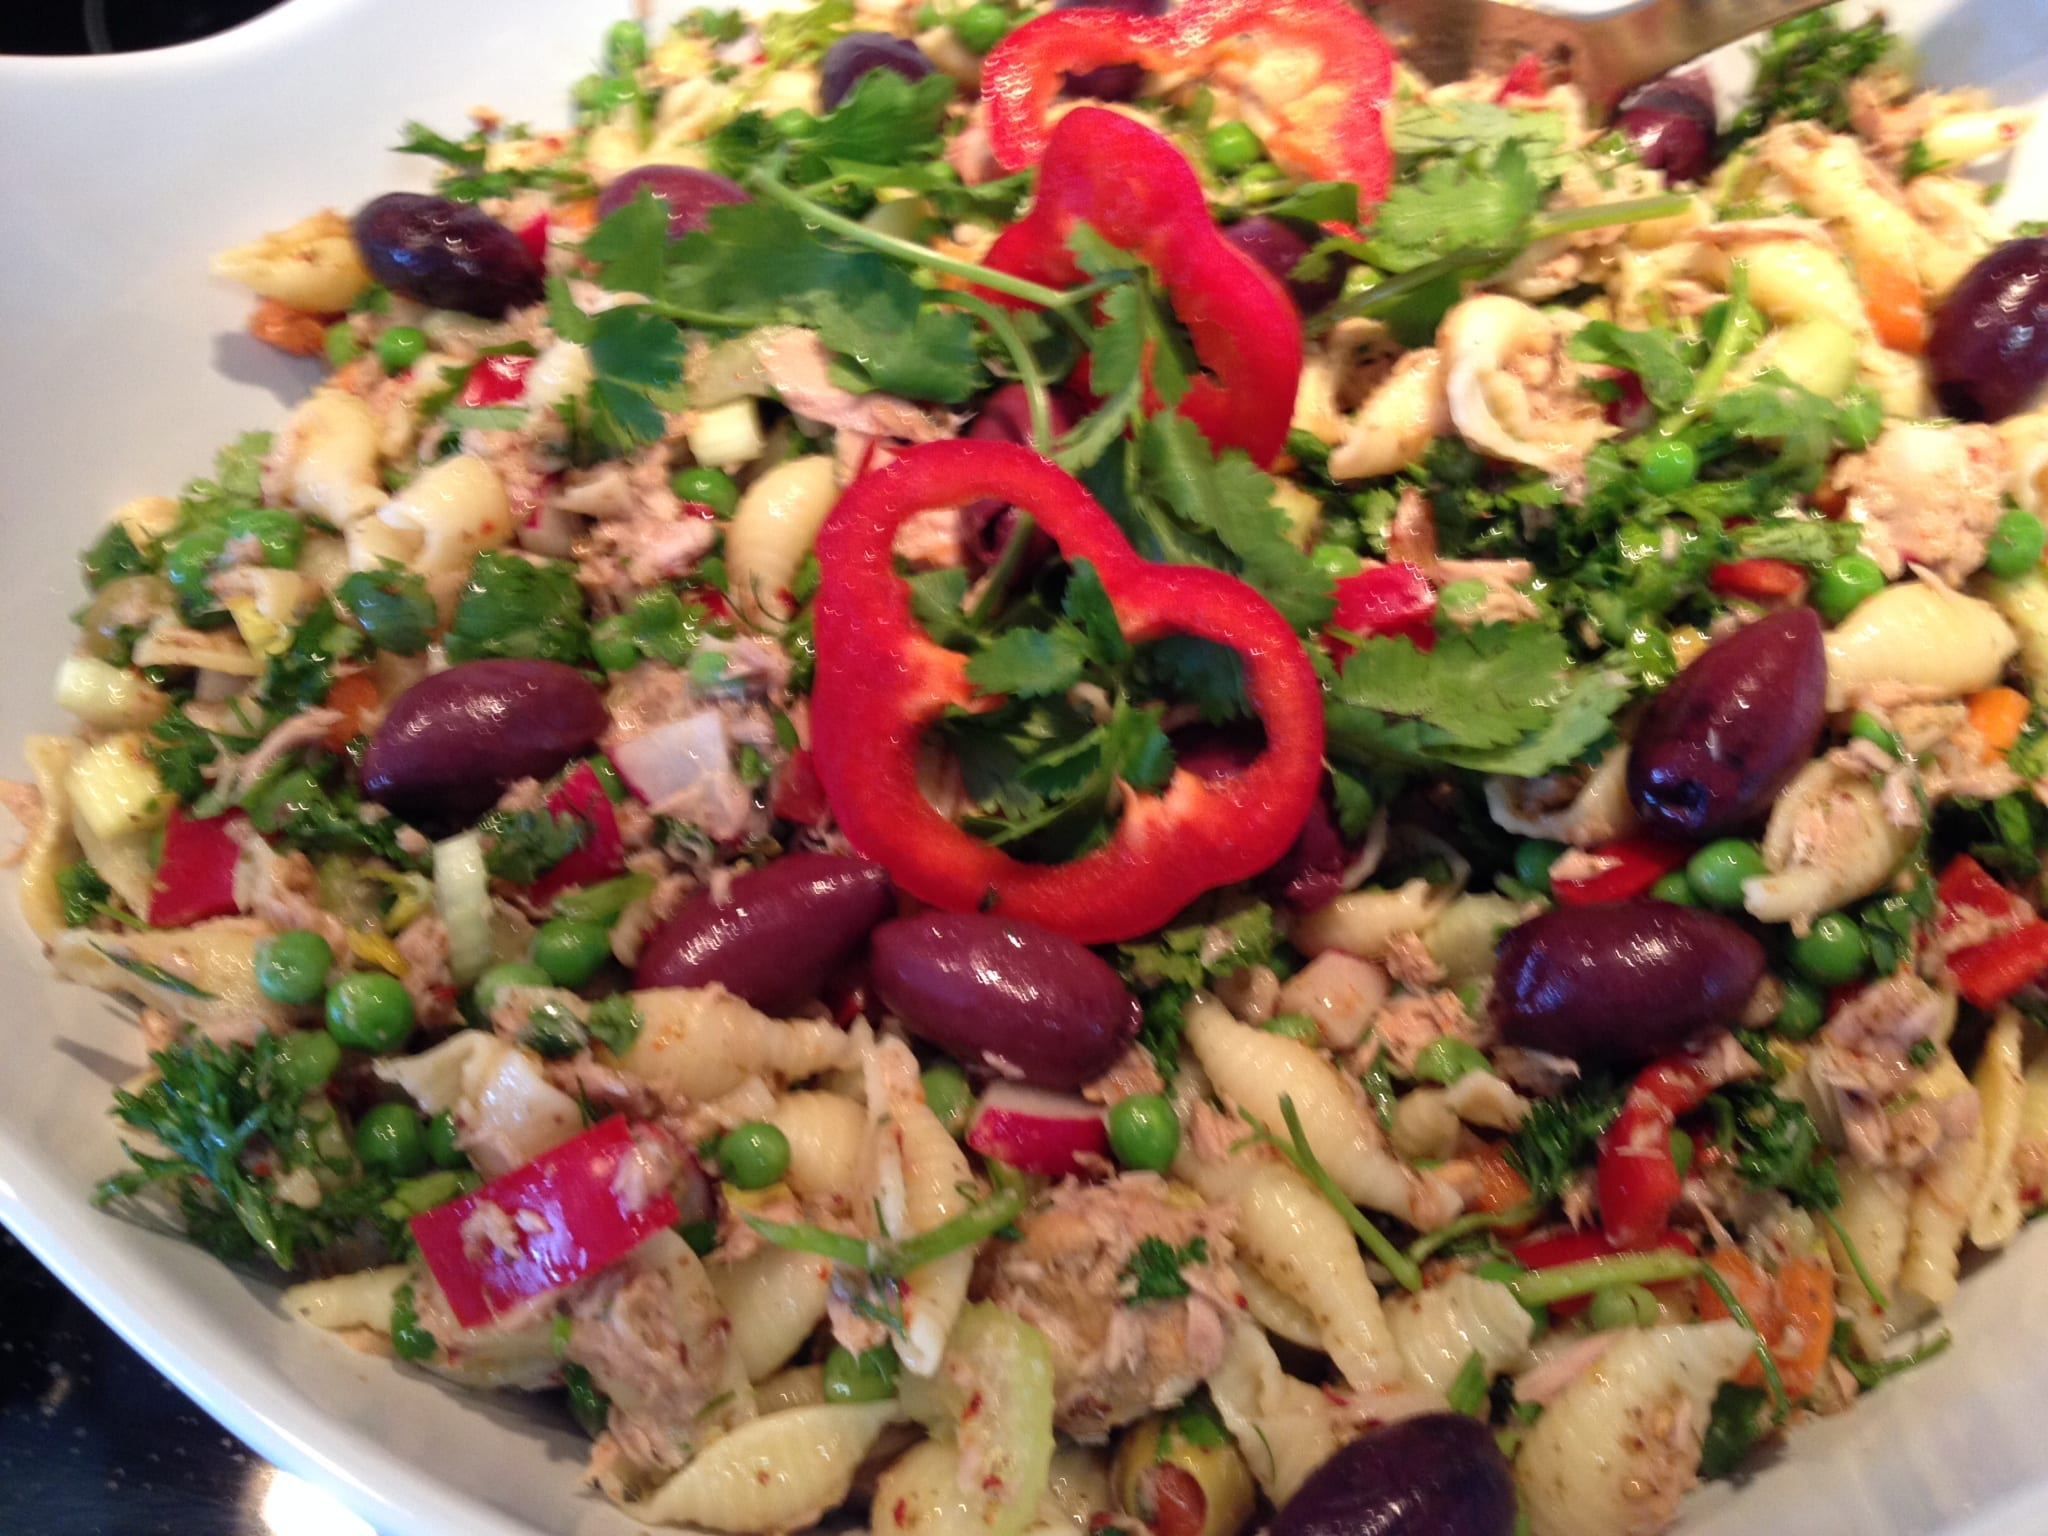 Tuna Pasta Salad with Fatoush Dressing